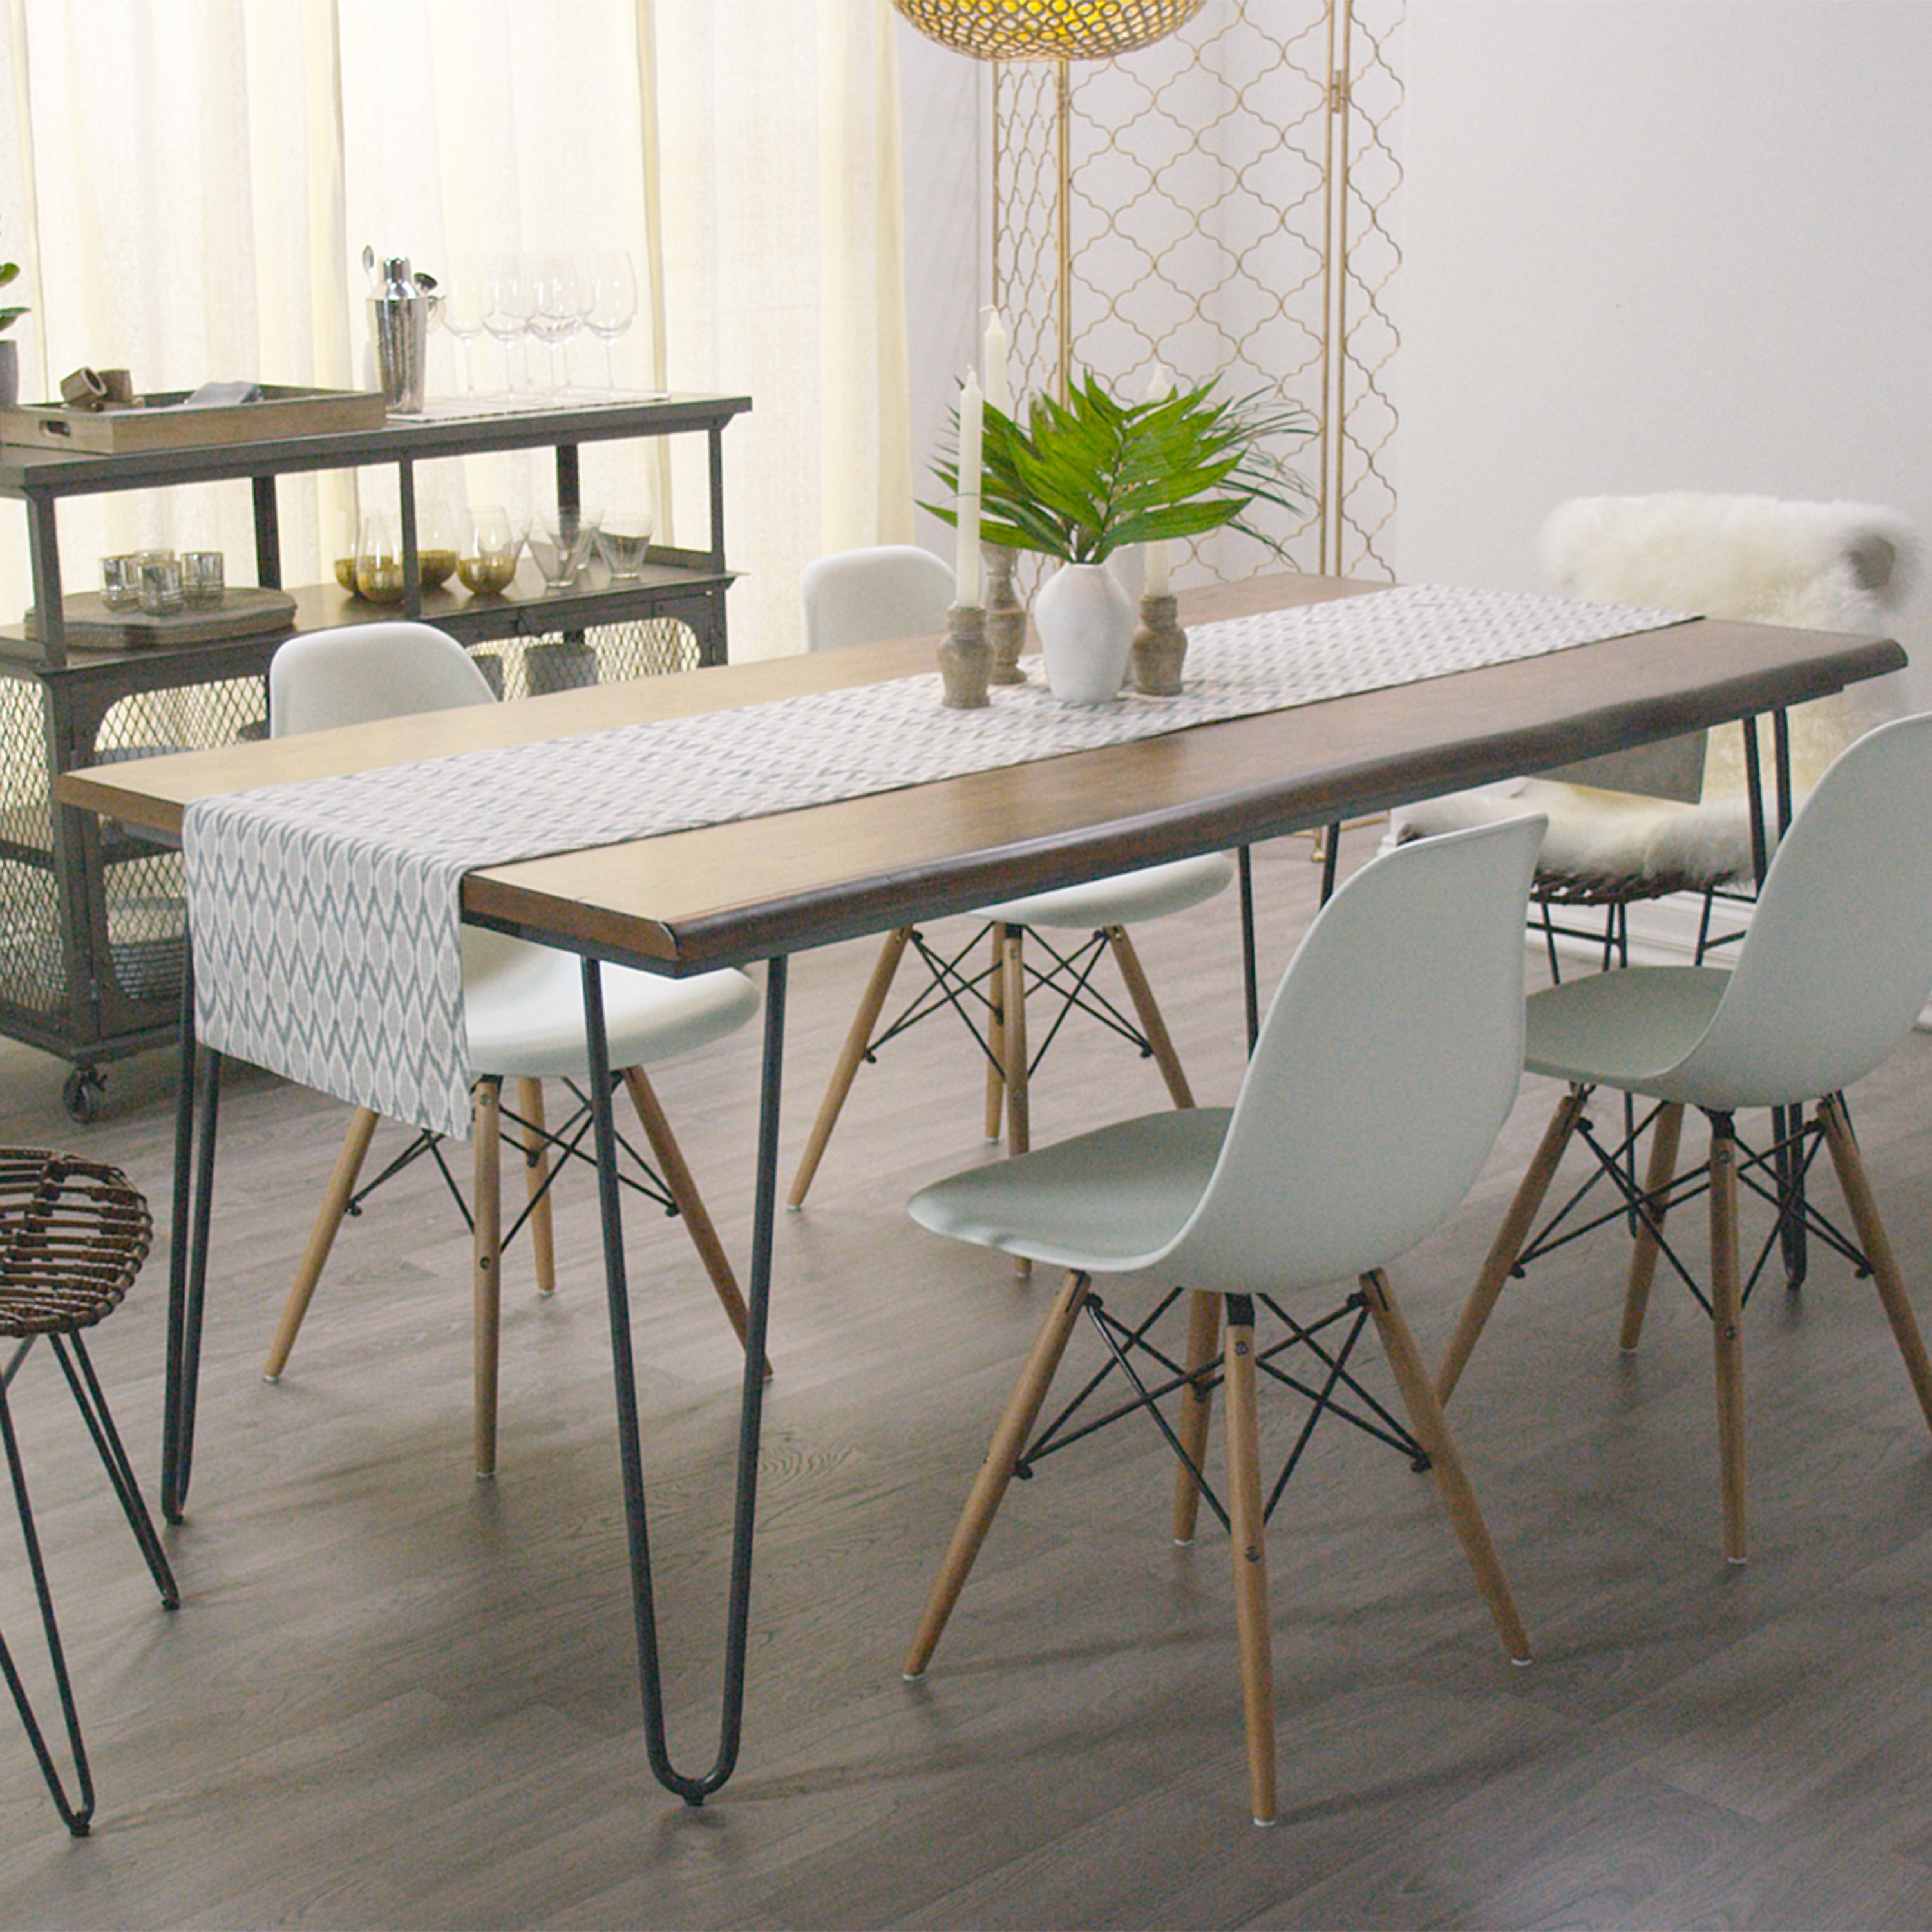 World Market Bedroom Furniture Dining Table Distressed Wood For Favorite Market Dining Tables (View 24 of 25)